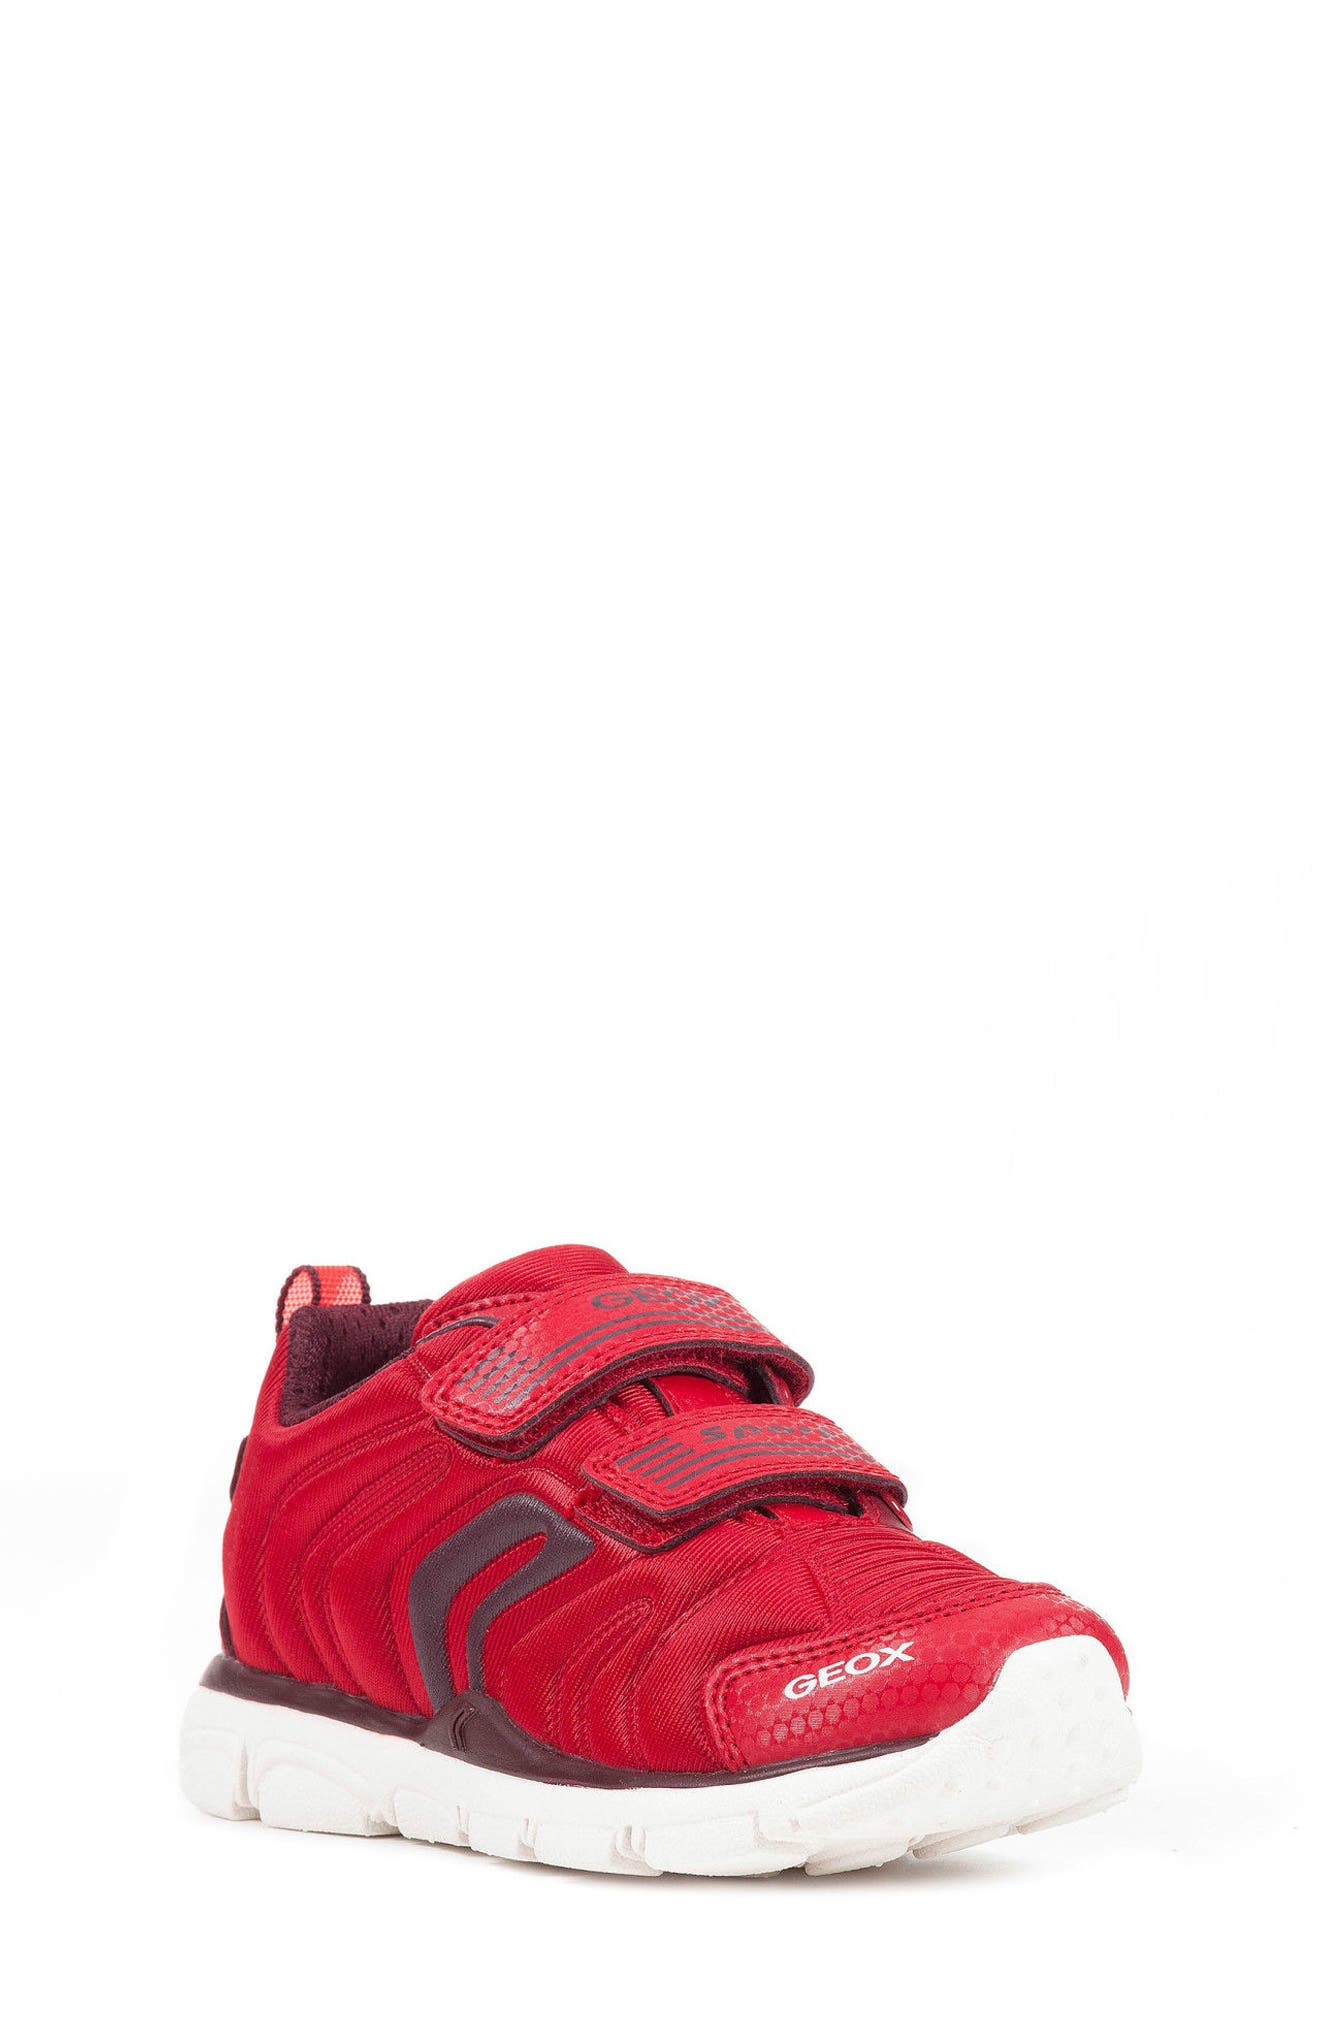 Alternate Image 1 Selected - Geox Torque Sneaker (Toddler, Little Kid & Big Kid)